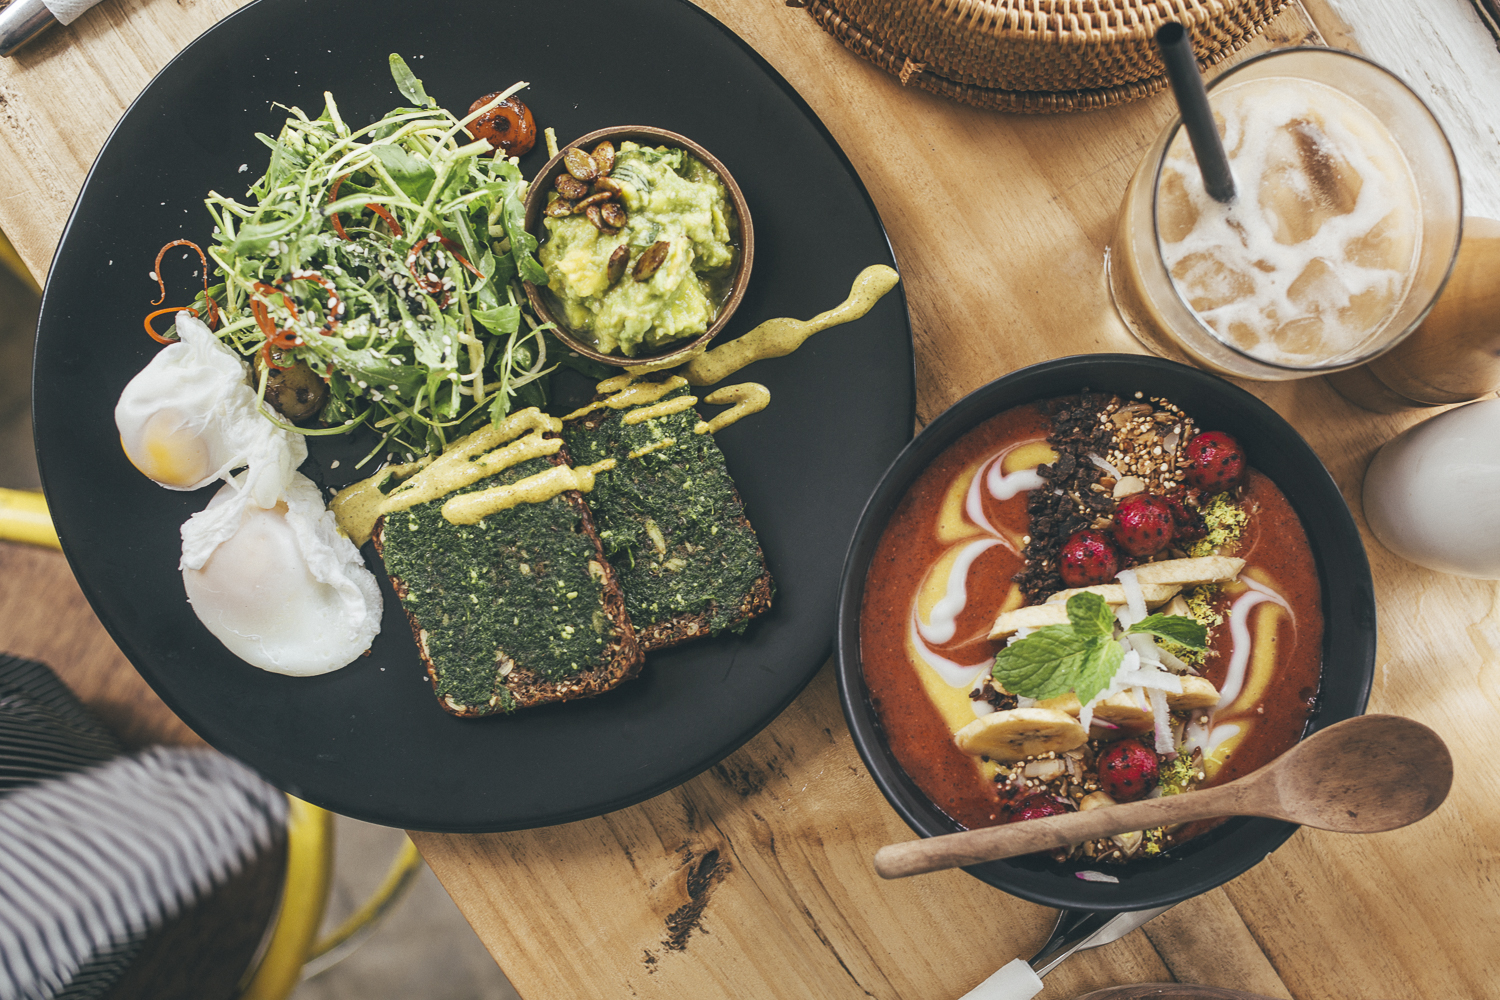 Bali Food guide: Two Trees Eatery